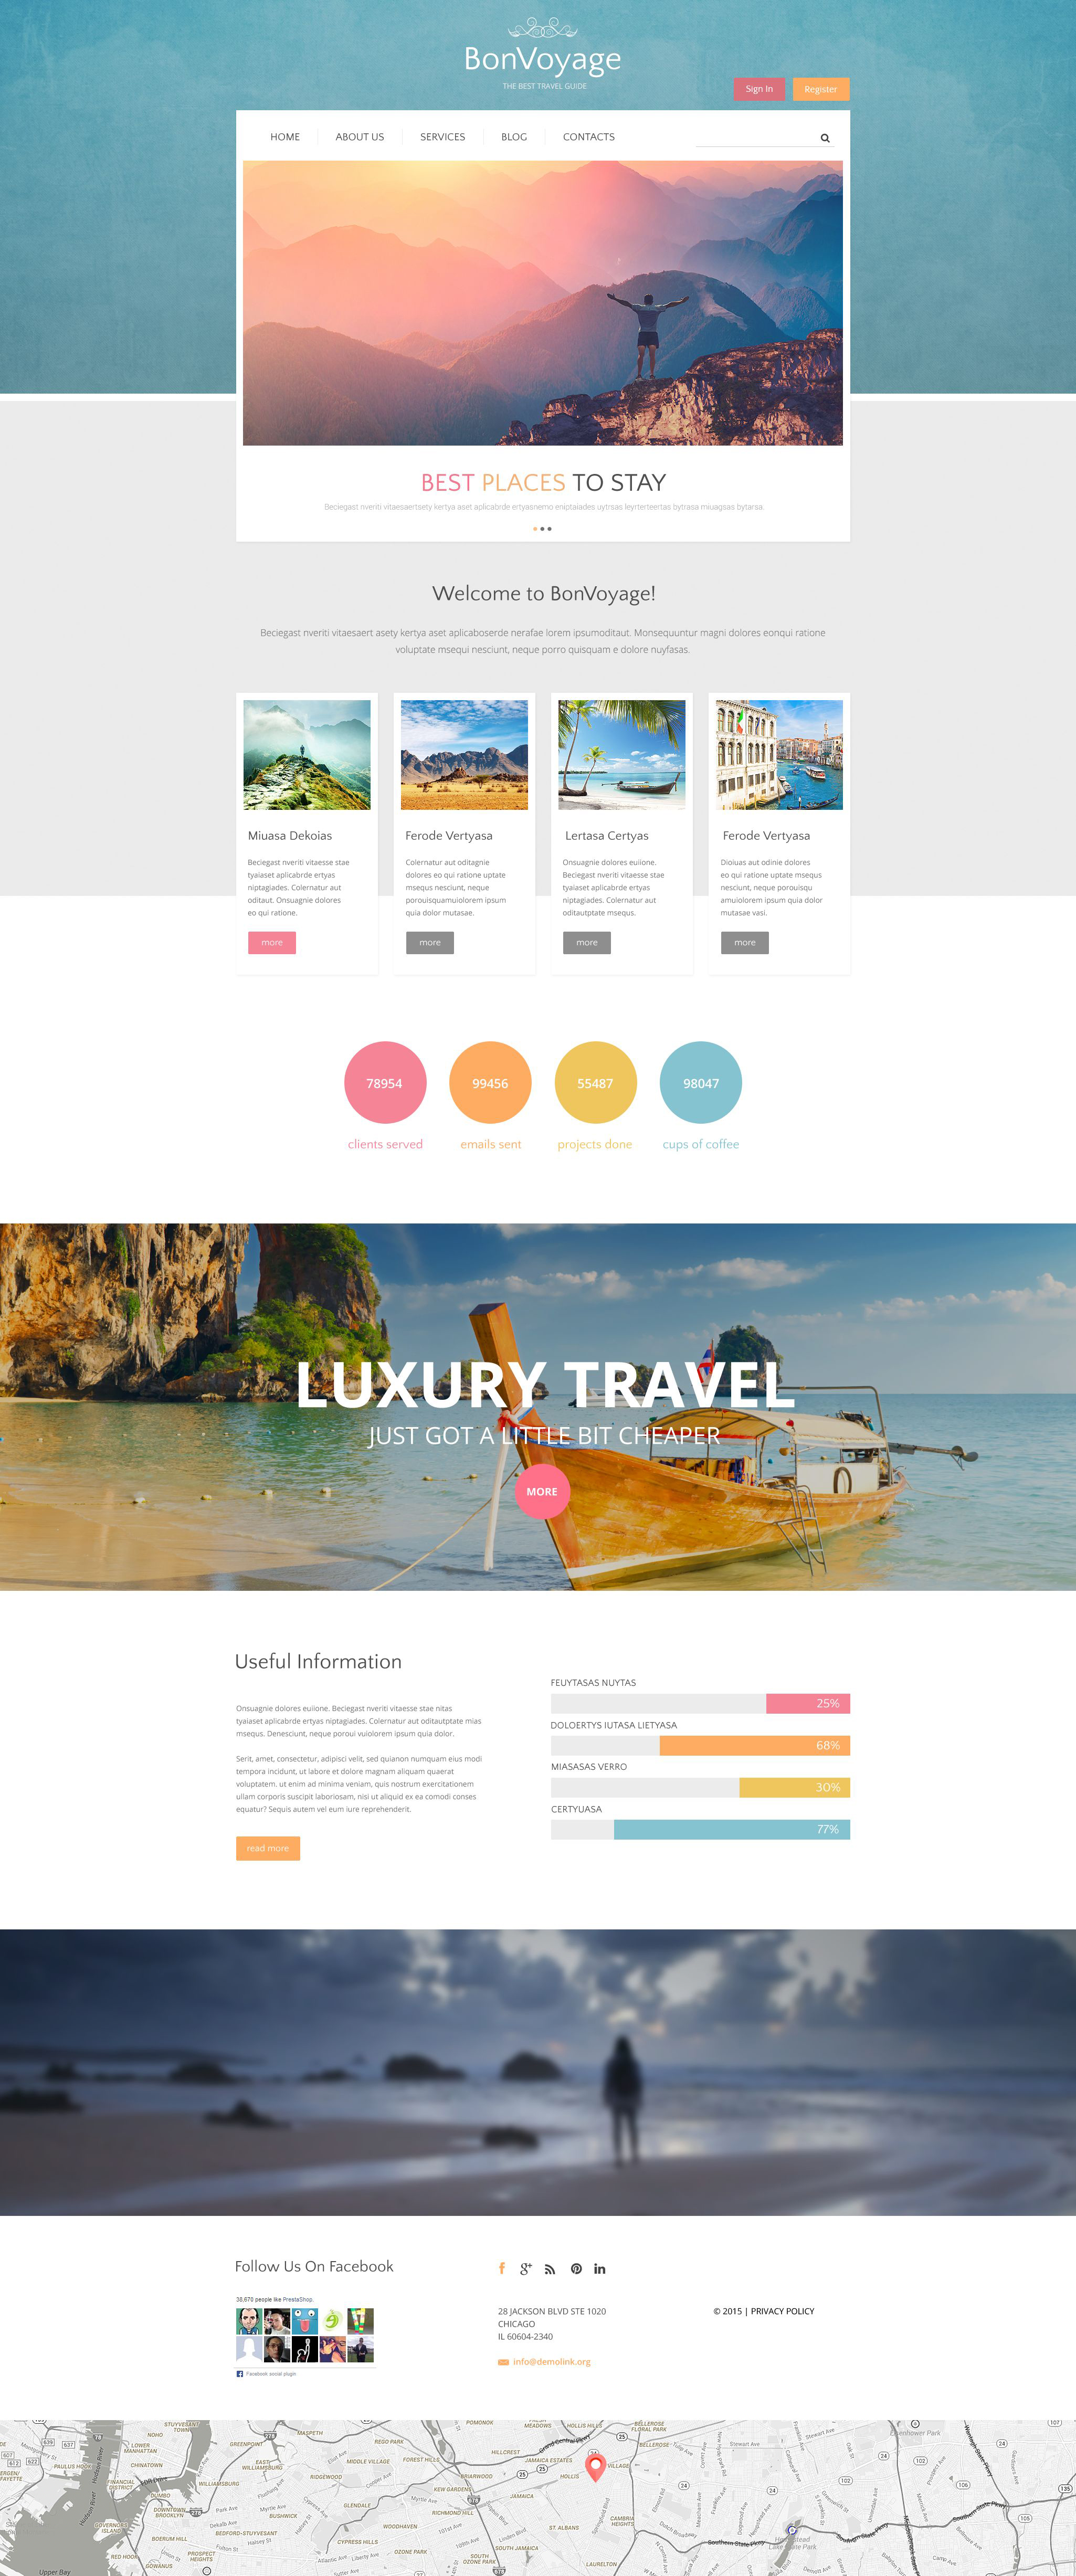 The Travel Agency Drupal Design 53893, one of the best Drupal templates of its kind (travel, most popular), also known as travel agency Drupal template, compass Drupal template, tour country Drupal template, resort Drupal template, spa Drupal template, flight hotel Drupal template, car Drupal template, rental Drupal template, cruise Drupal template, sights Drupal template, reservation Drupal template, location Drupal template, authorization Drupal template, ticket Drupal template, guide Drupal template, beach Drupal template, sea Drupal template, relaxation Drupal template, recreation Drupal template, impression Drupal template, air Drupal template, liner Drupal template, traveling Drupal template, apartment Drupal template, vacation Drupal template, rest Drupal template, comfort Drupal template, destination Drupal template, explorat and related with travel agency, compass, tour country, resort, spa, flight hotel, car, rental, cruise, sights, reservation, location, authorization, ticket, guide, beach, sea, relaxation, recreation, impression, air, liner, traveling, apartment, vacation, rest, comfort, destination, explorat, etc.